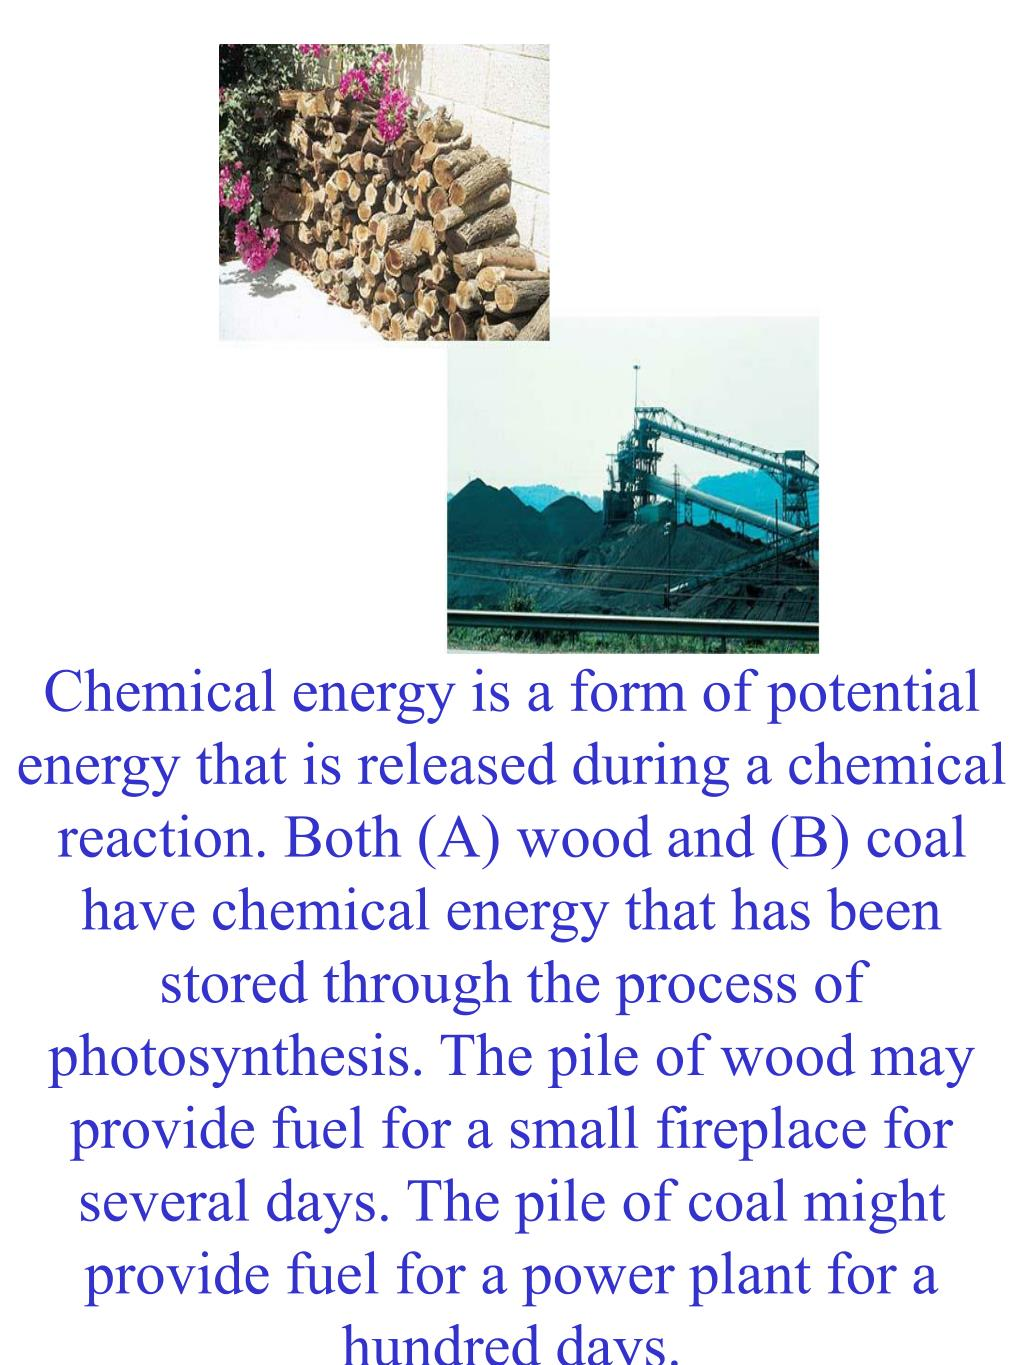 Chemical energy is a form of potential energy that is released during a chemical reaction. Both (A) wood and (B) coal have chemical energy that has been stored through the process of photosynthesis. The pile of wood may provide fuel for a small fireplace for several days. The pile of coal might provide fuel for a power plant for a hundred days.